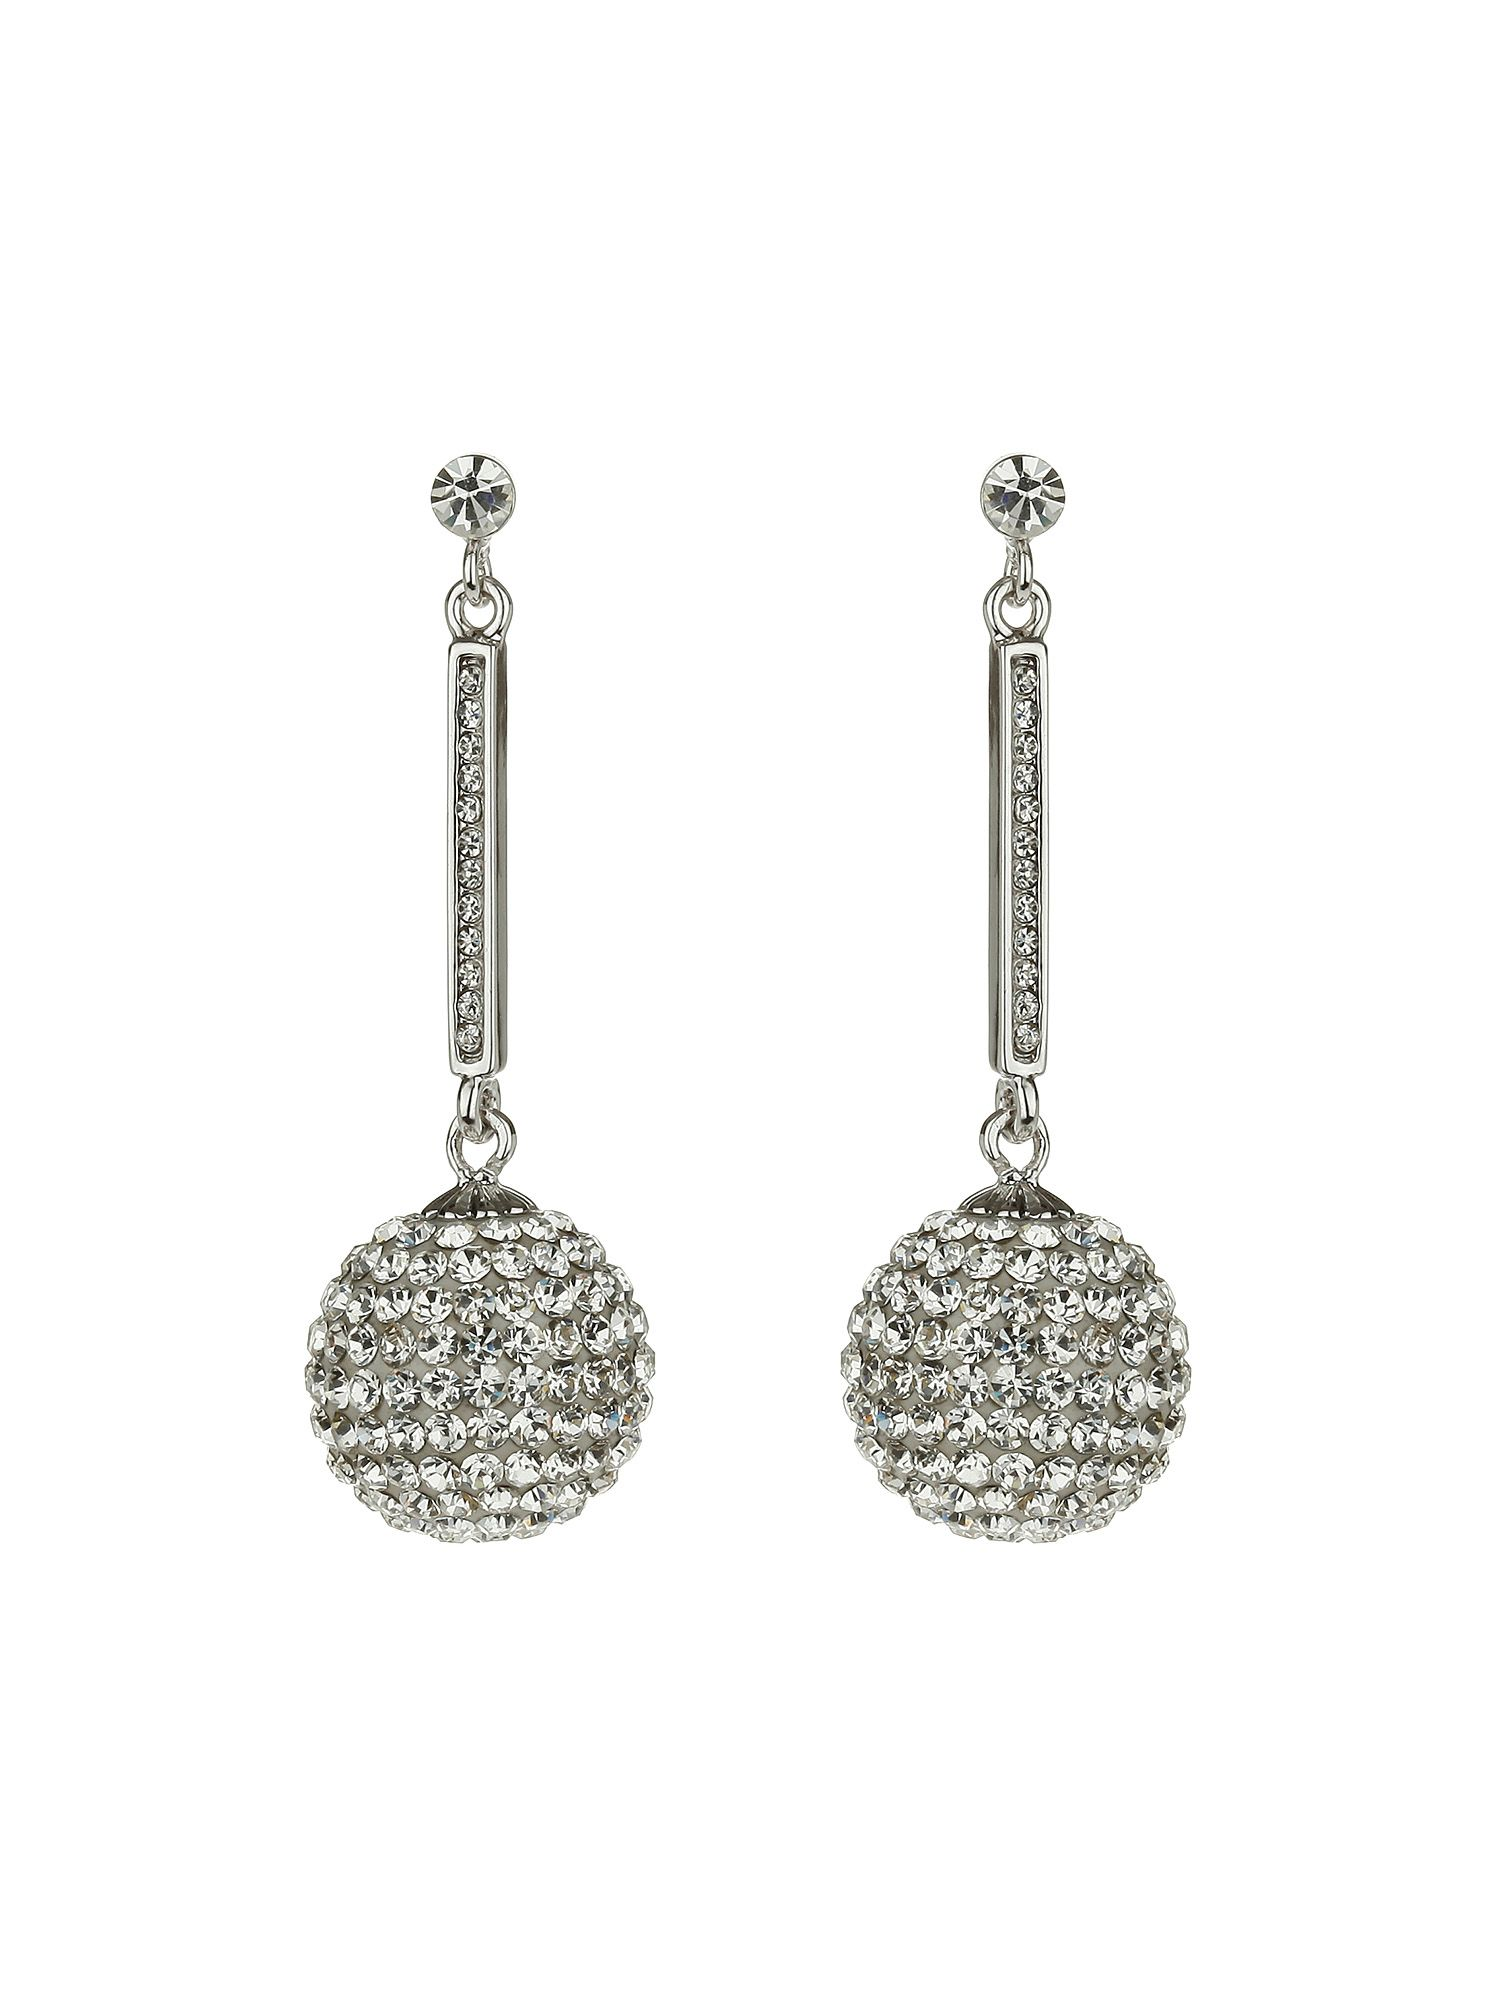 17mm ball drop earrings